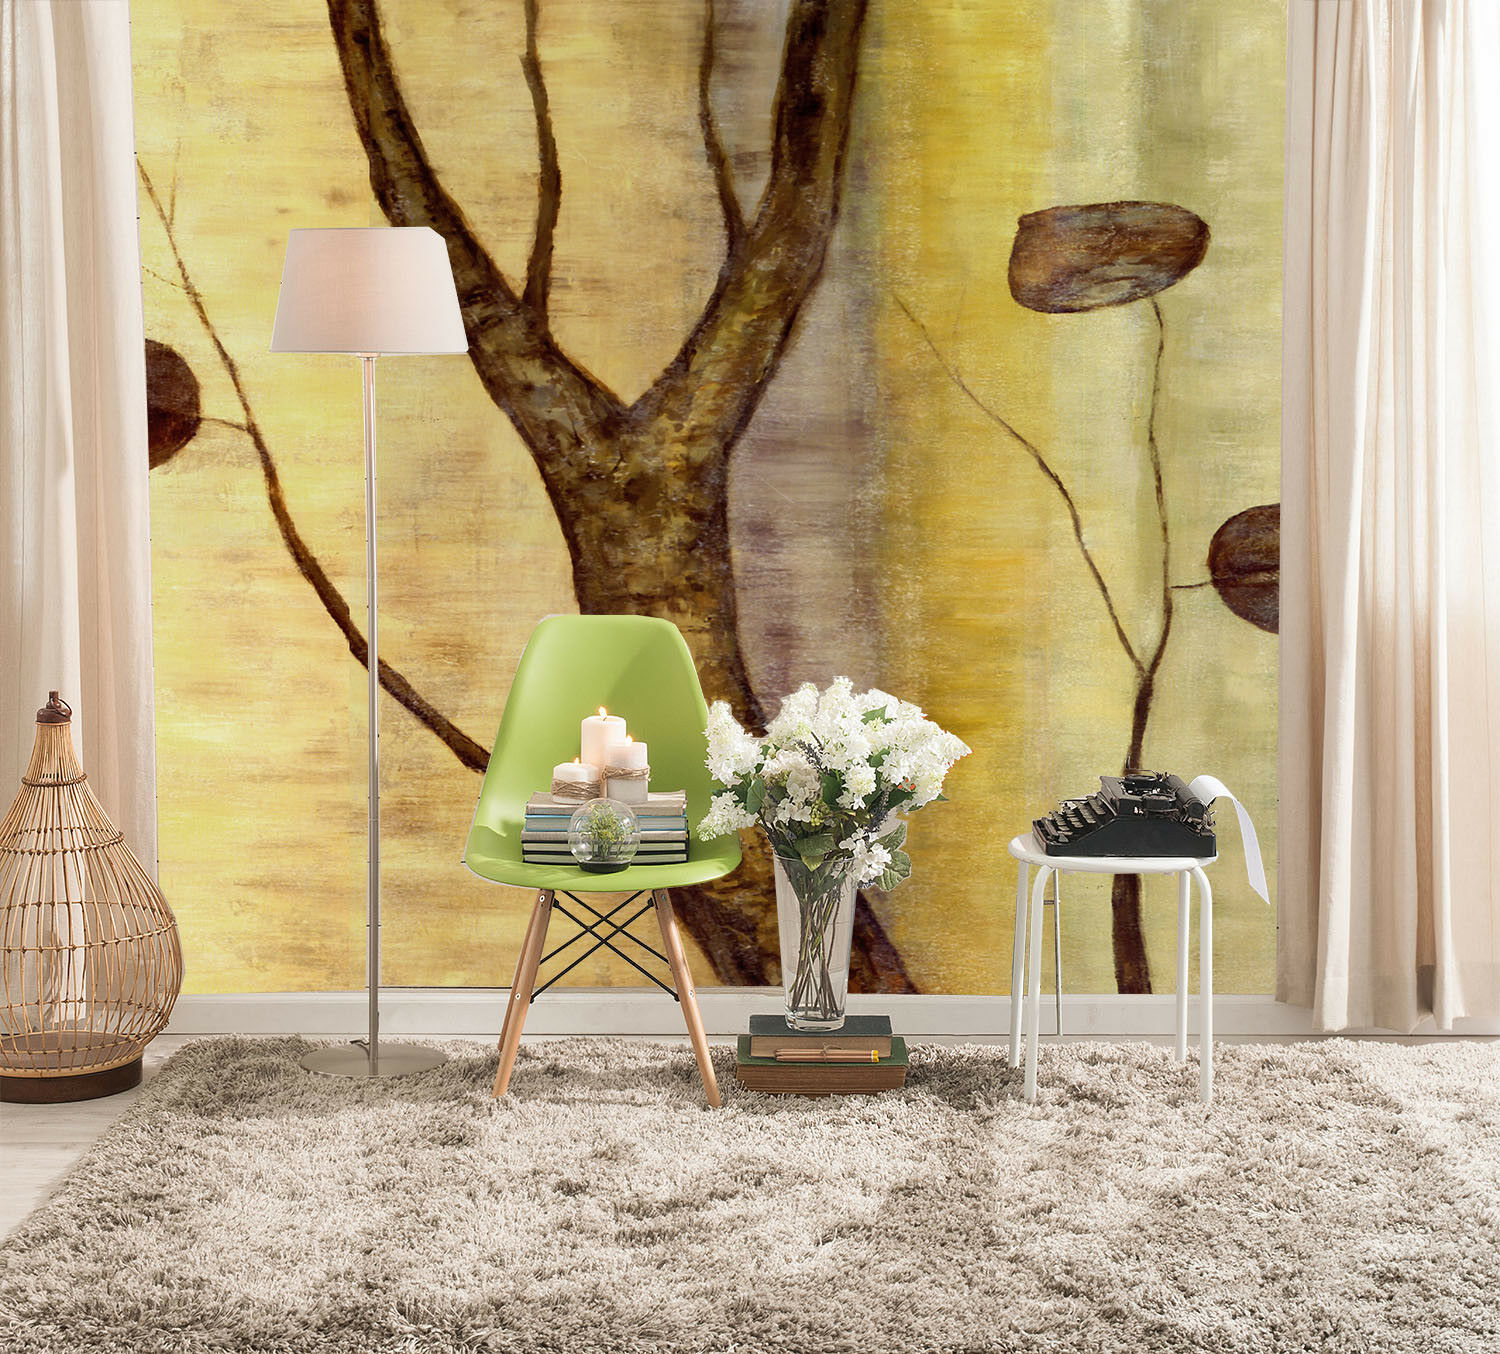 3D Leaf Trunk 406 Wallpaper Murals Wall Print Wallpaper Mural AJ WALL AU Kyra